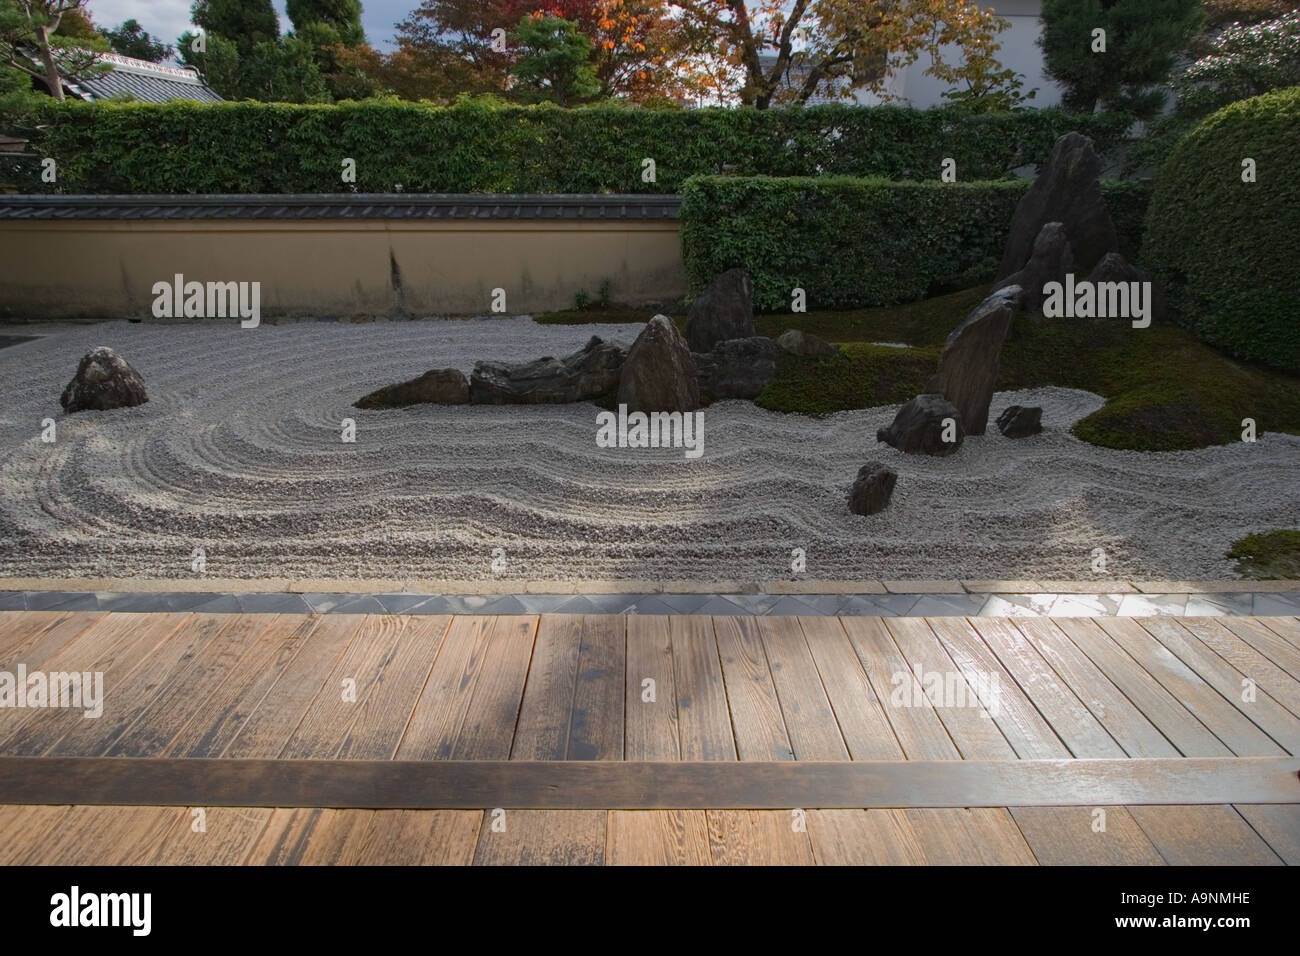 The zen rock garden at Zuiho, in which is a subtemple of Daitokuji Temple in Kyoto, Kansai Region, Japan Stock Photo